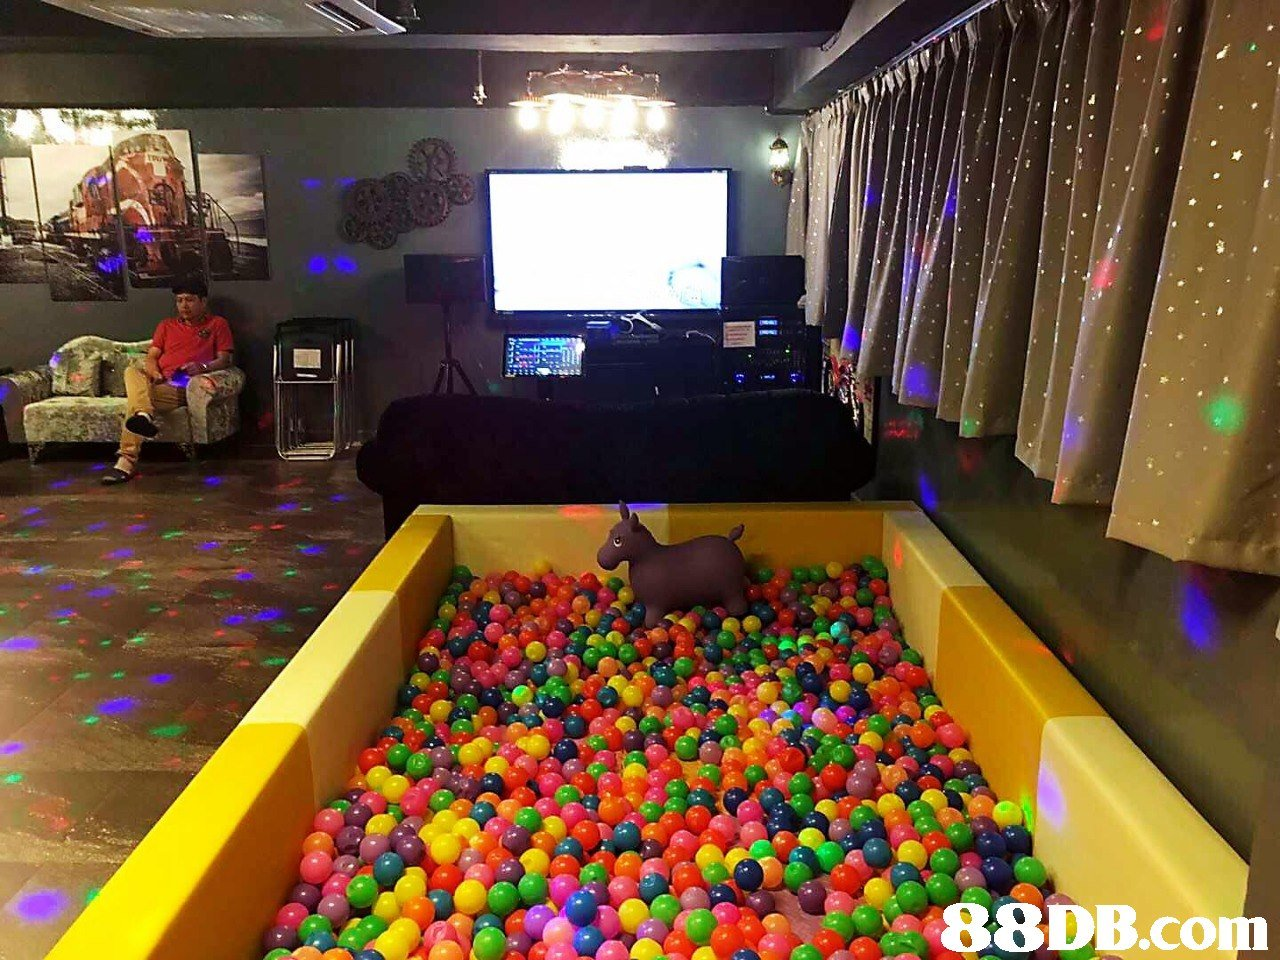 Ball pit,Toy,Room,